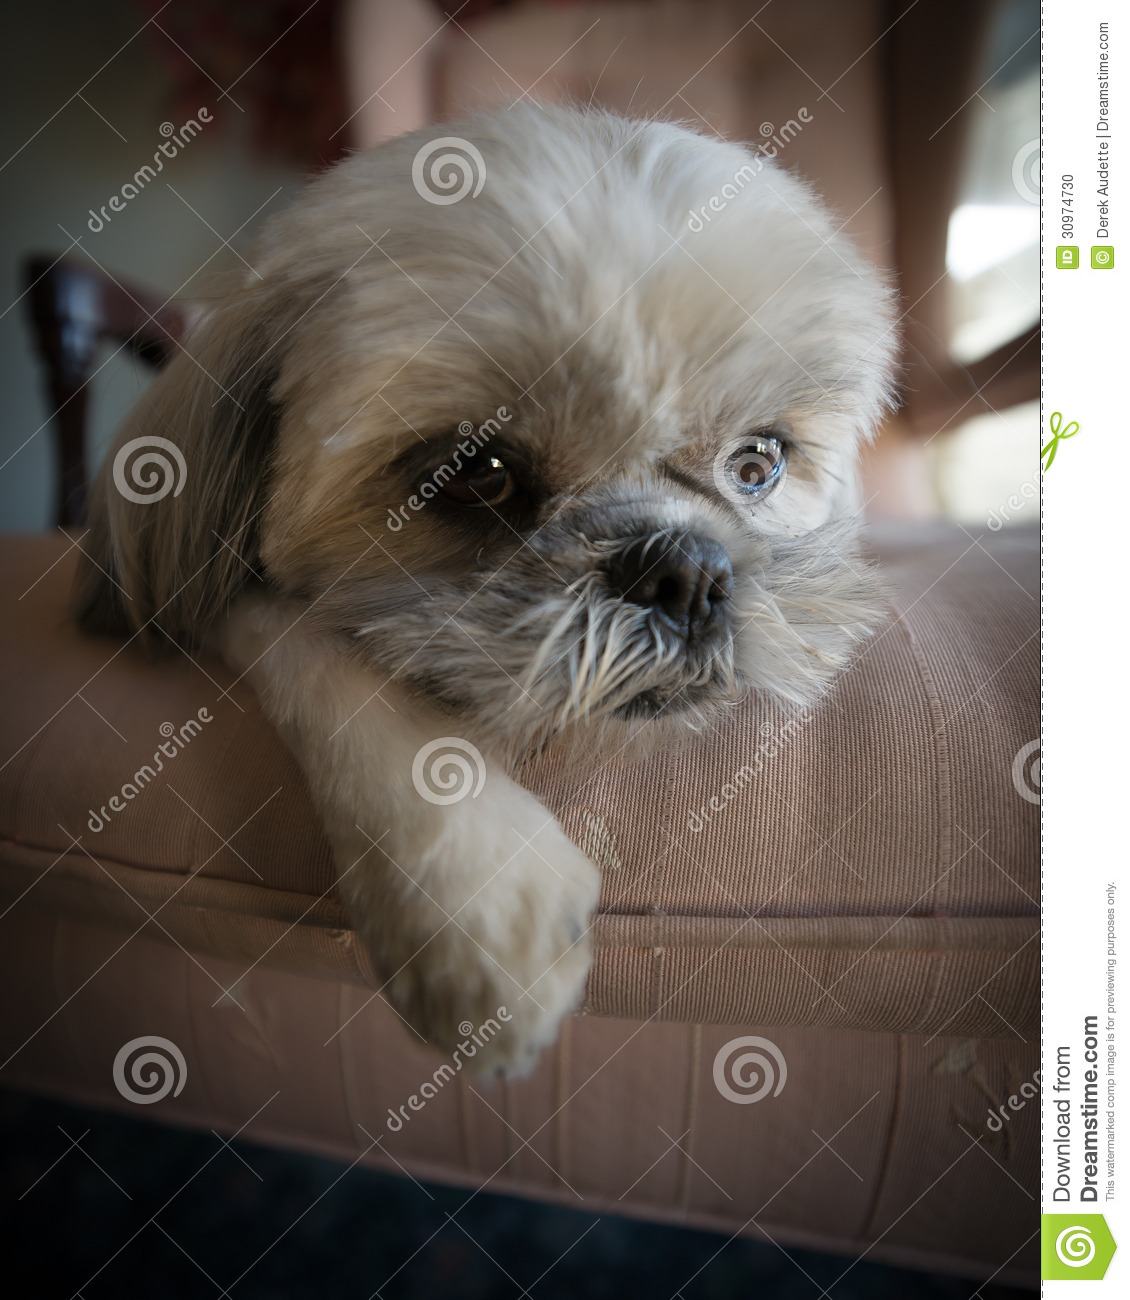 Cartoon dog stock photos images amp pictures shutterstock - Lazy Shih Tzu Puppy Lying On Chair Stock Photo Image